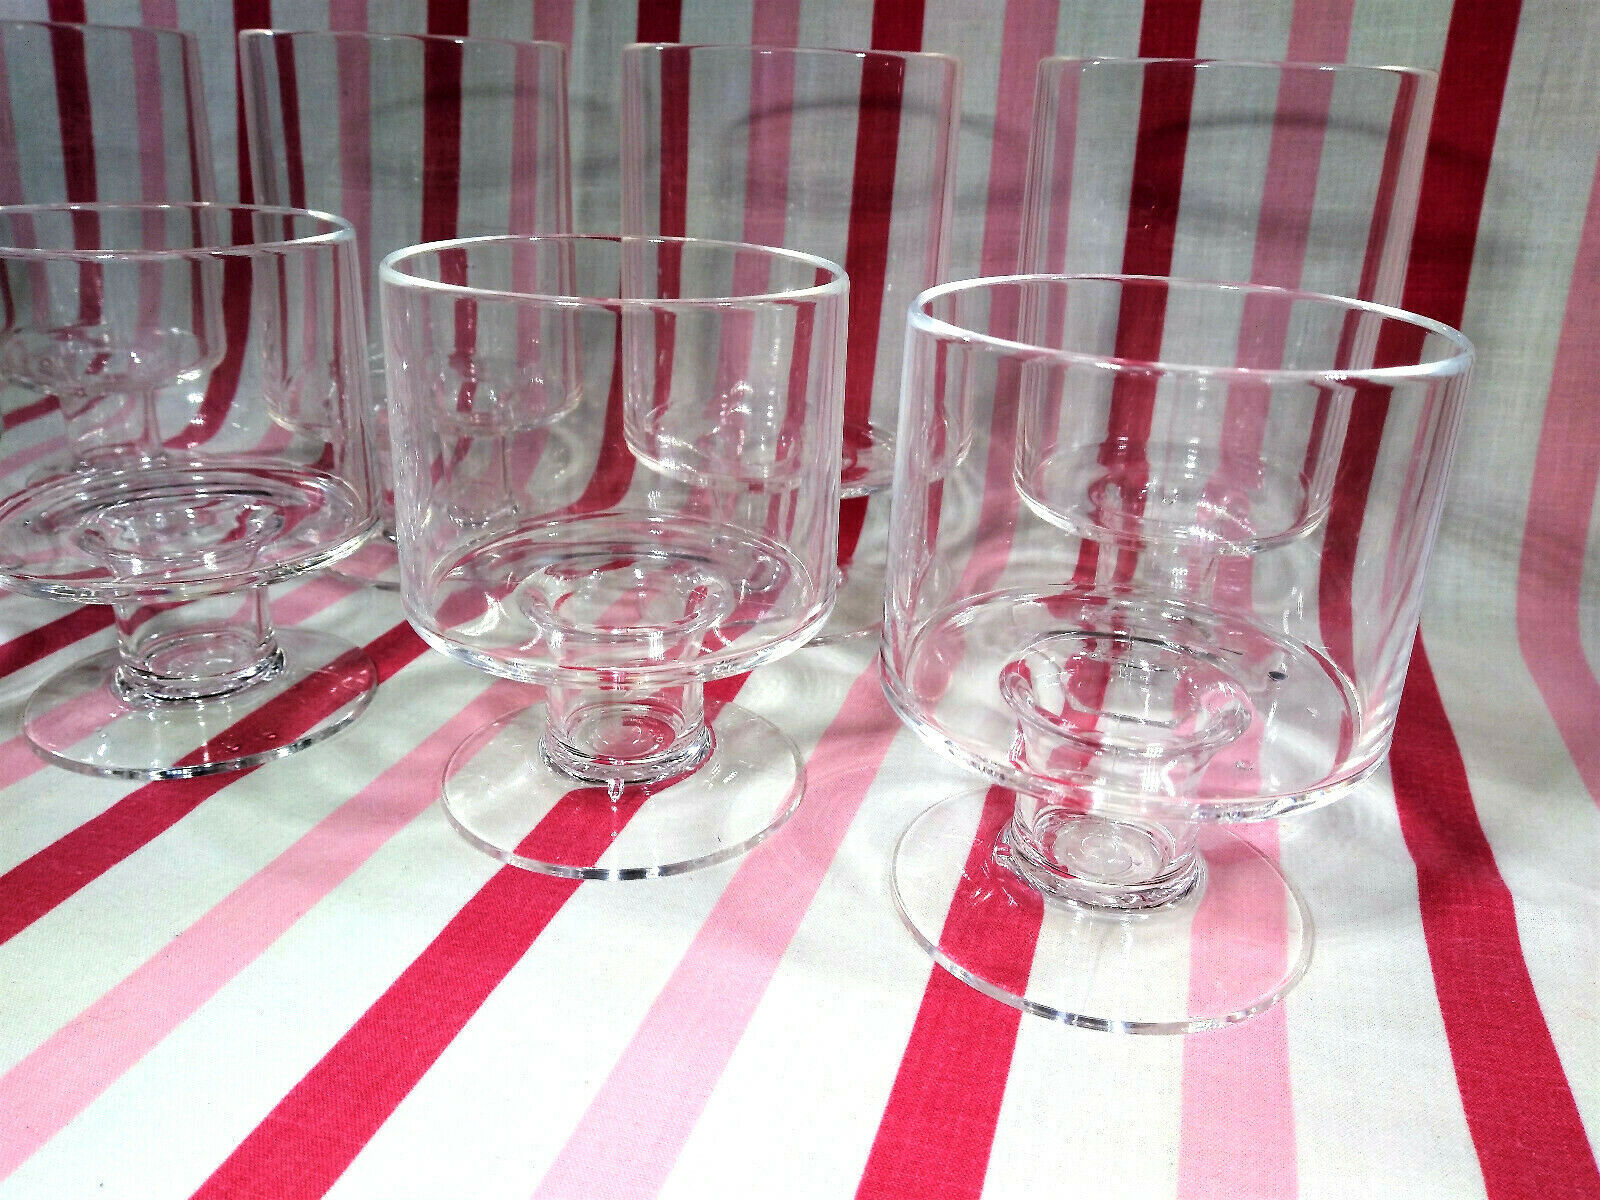 Primary image for Groovy MoD 1960's Plastic Pedestal Kitchen Stemware or Barware 2 Sizes 8pc Set!